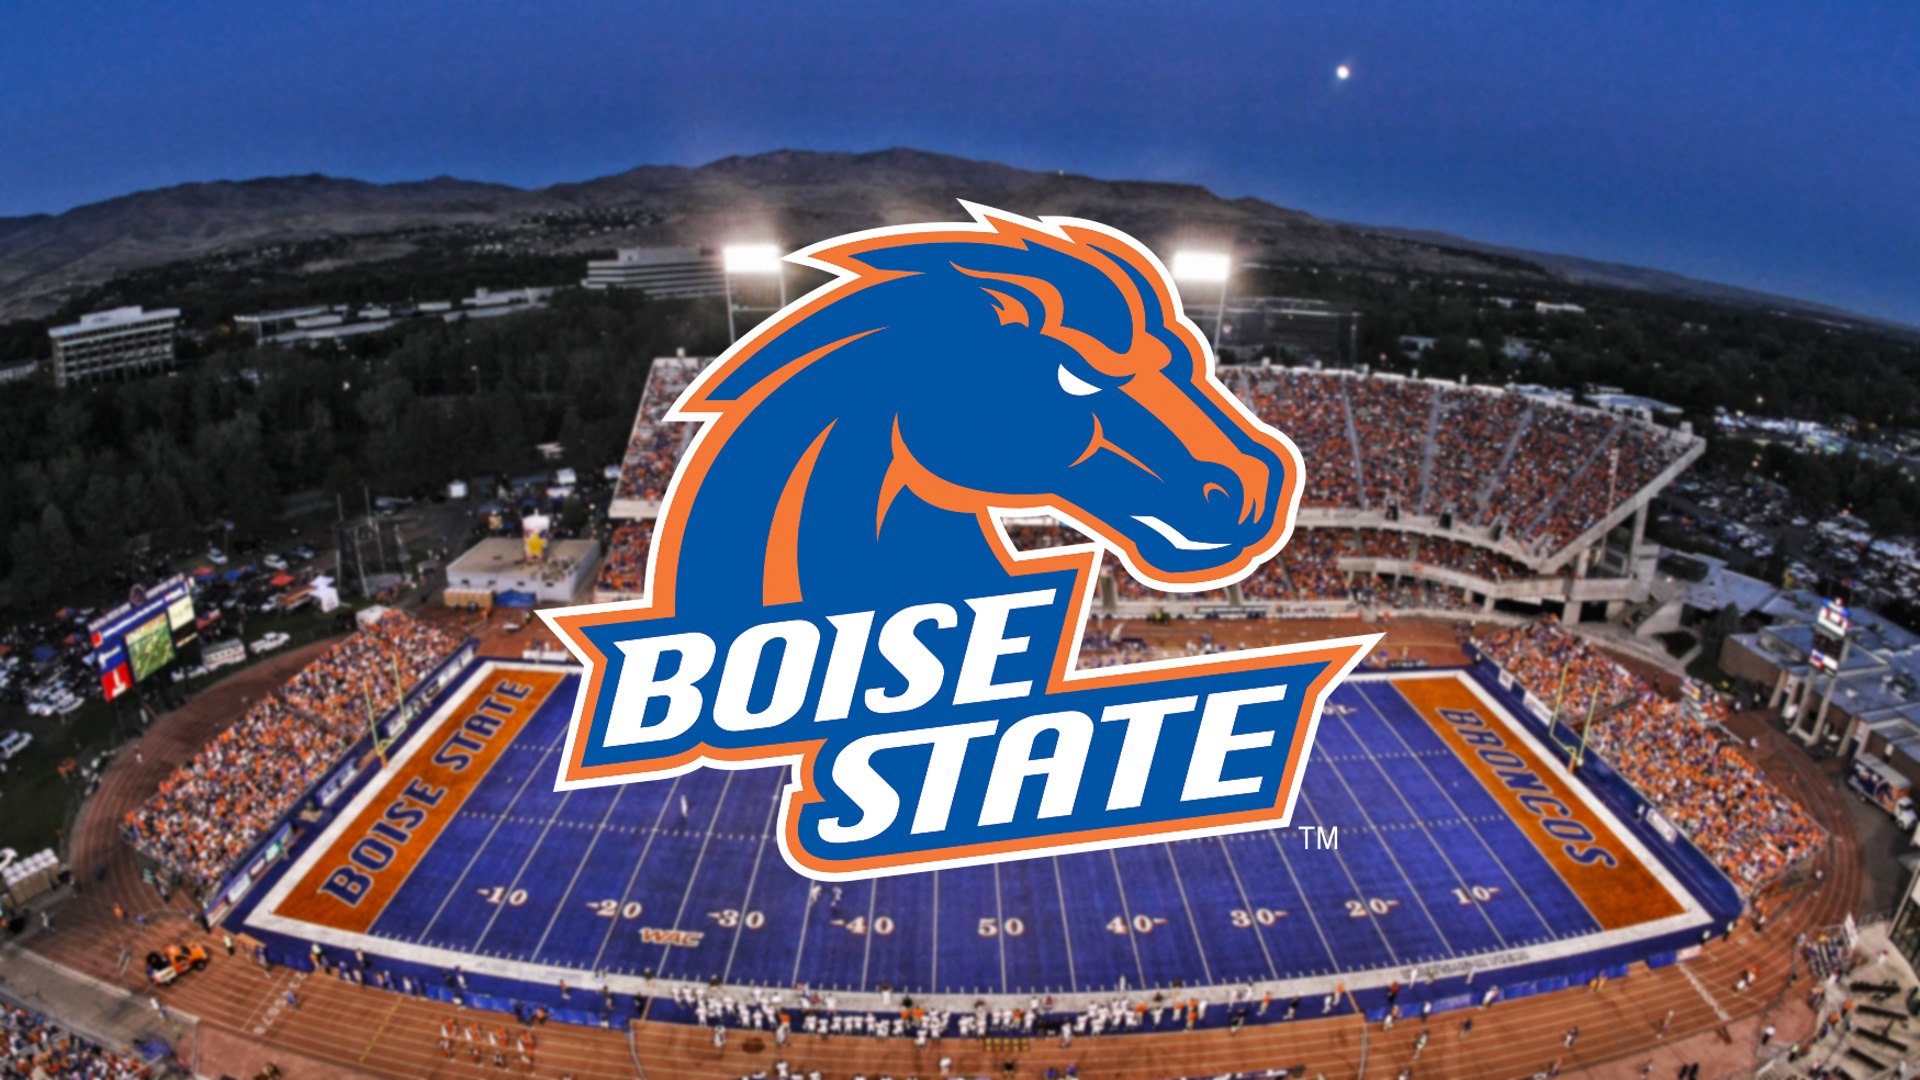 Boise State Dog Video